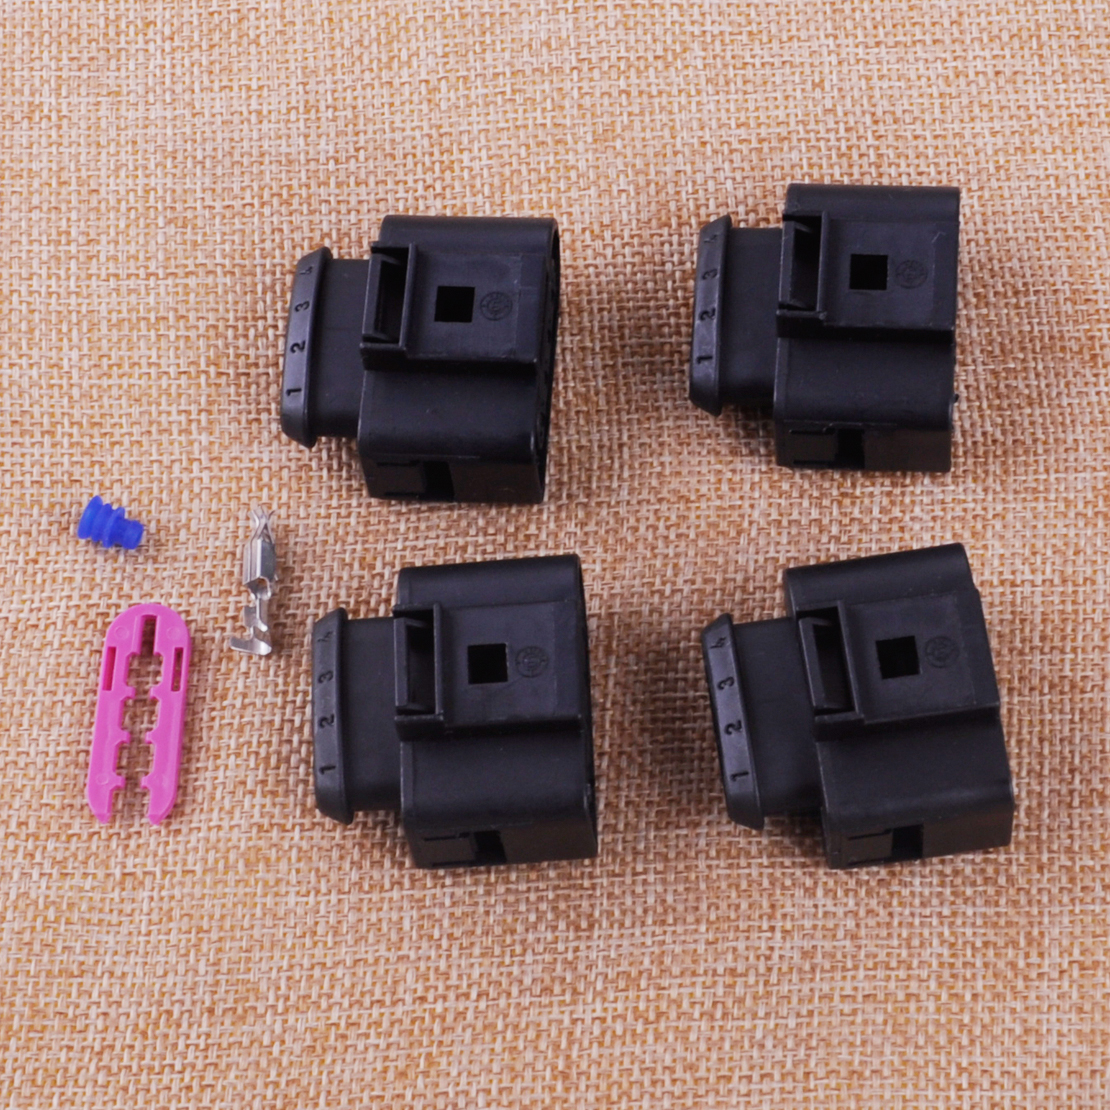 CITALL 4PCS Ignition Coil Connector IC39 Plug Repair KitFit For Audi A4 A6 VW Golf Passat Jetta Polo Touran Transporter 2016